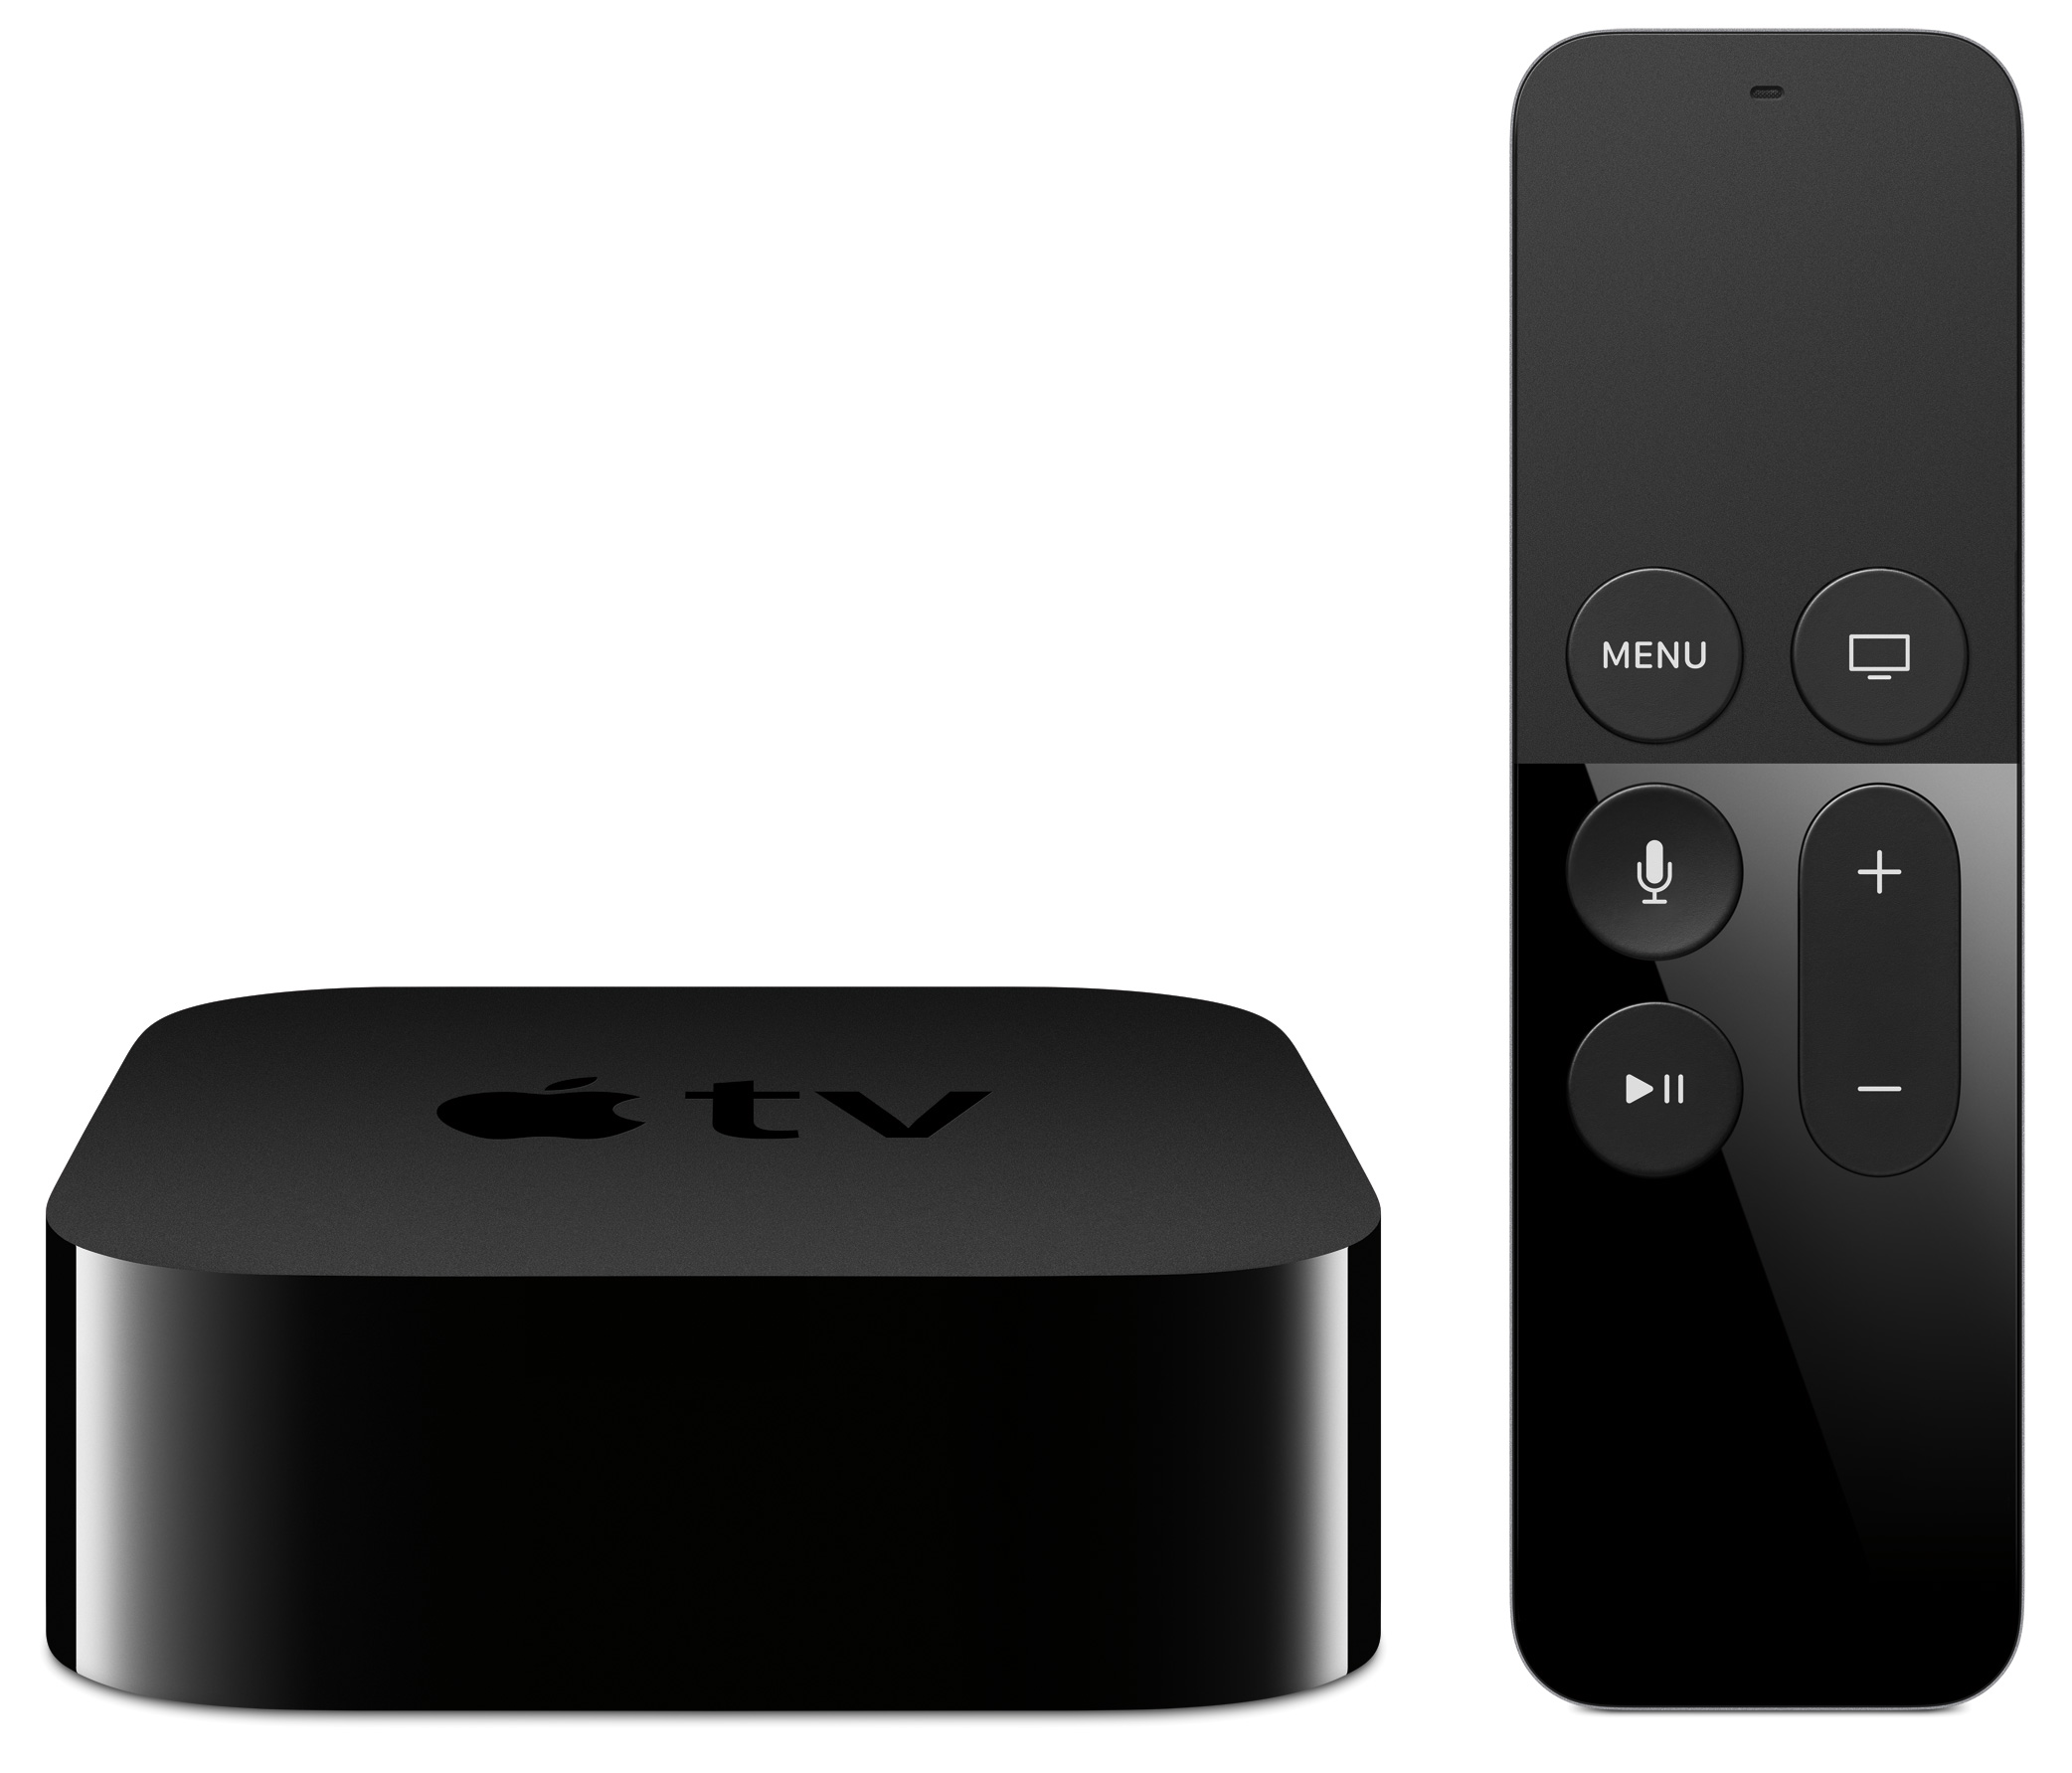 The fourth generation Apple TV